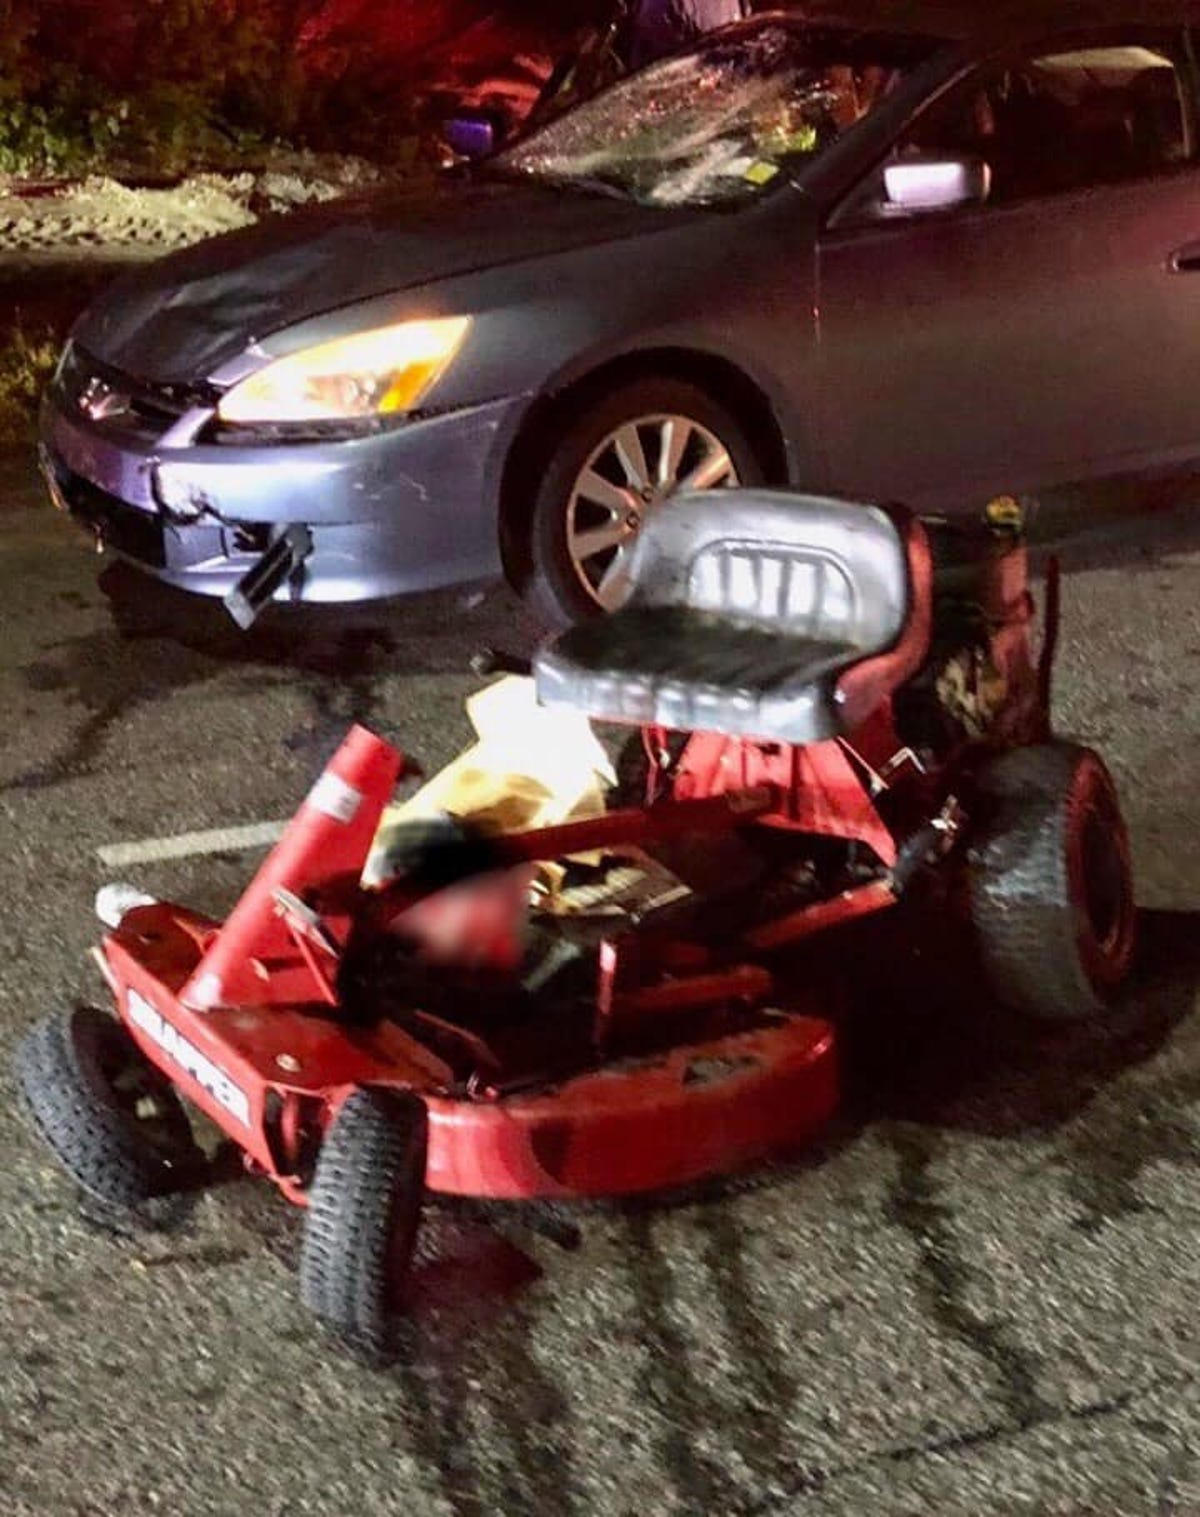 Man dies after Route 17 lawnmower crash